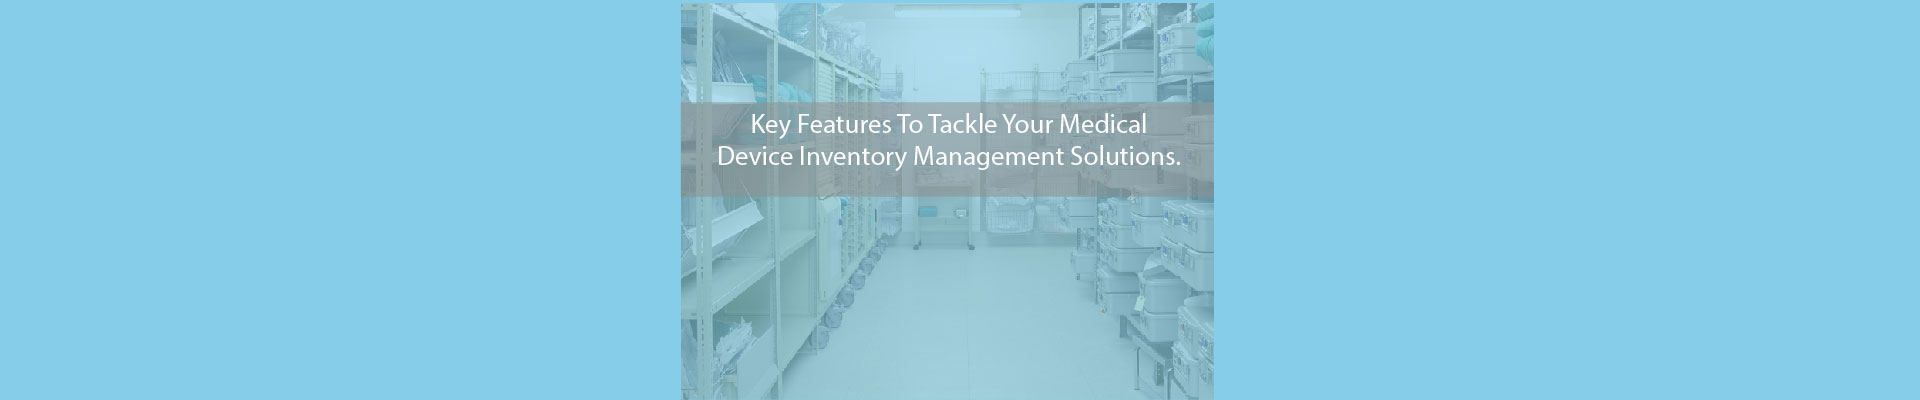 Features to consider for medical device inventory software